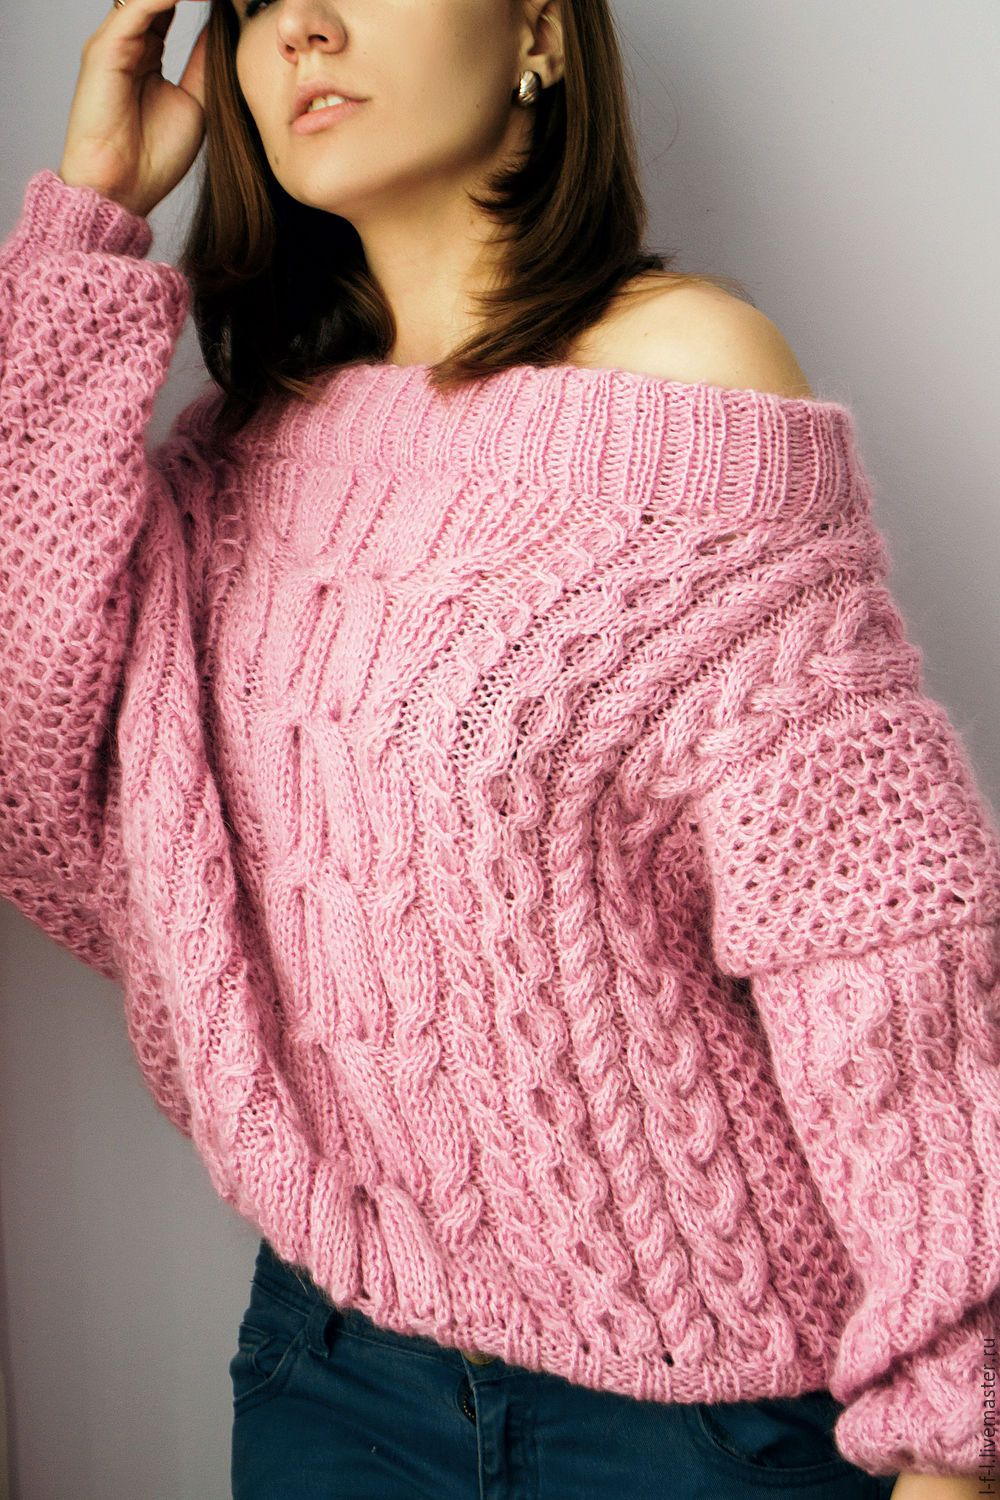 Knitted sweater with braids in the style of Ruban shop ...